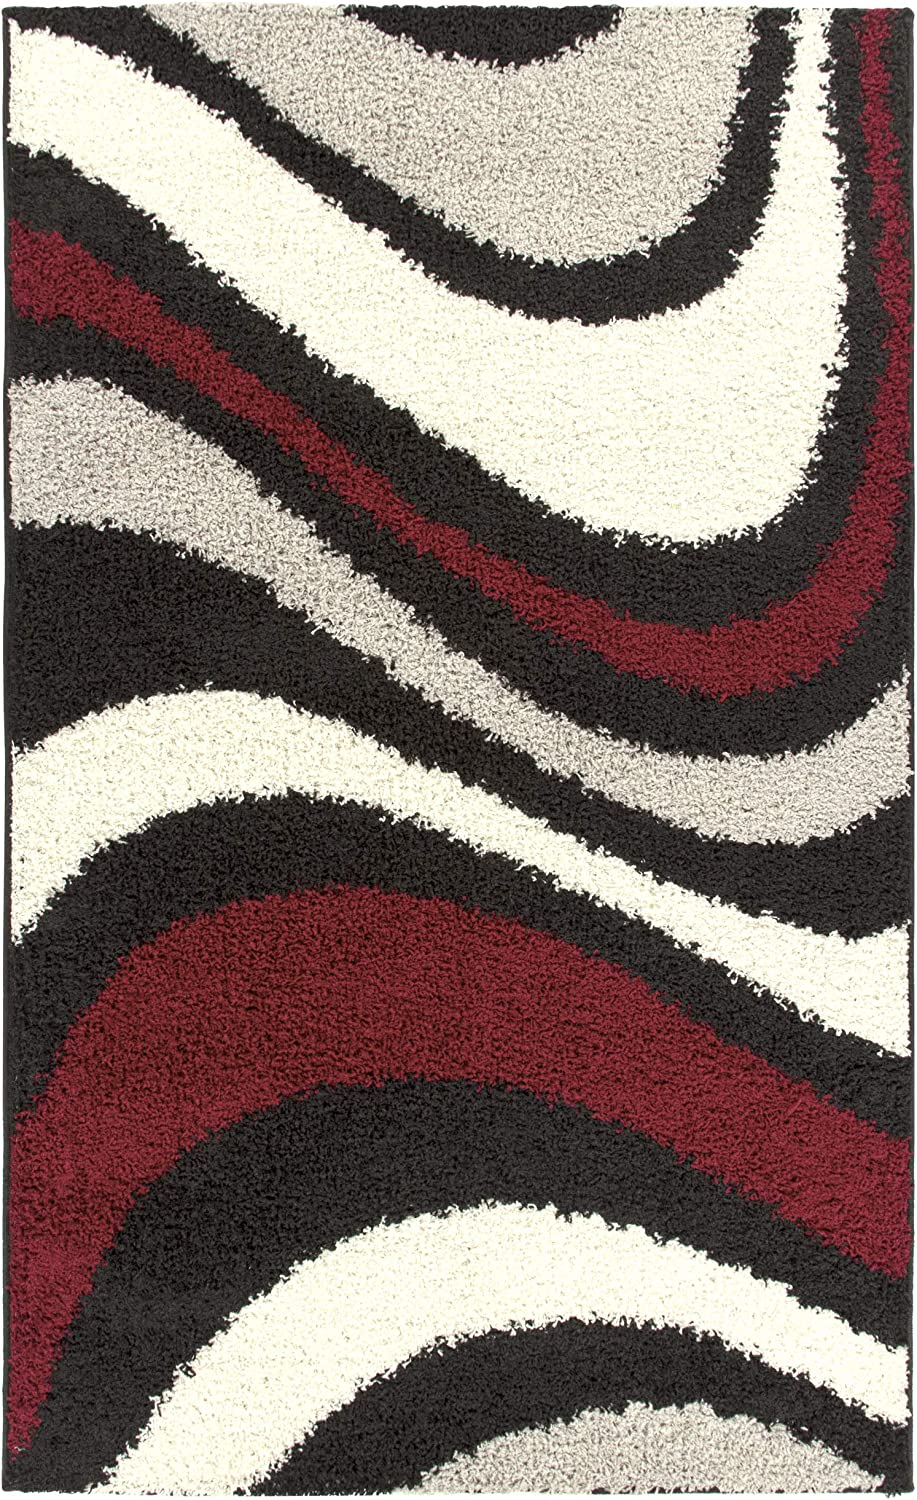 Blue Nile Mills Ceará Shag Area Rug, Plush, Extra-Thick Pile, Shabby-Chic, Retro, Abstract, Bold Wave Design, Jute Backing, Black, 5' x 8'